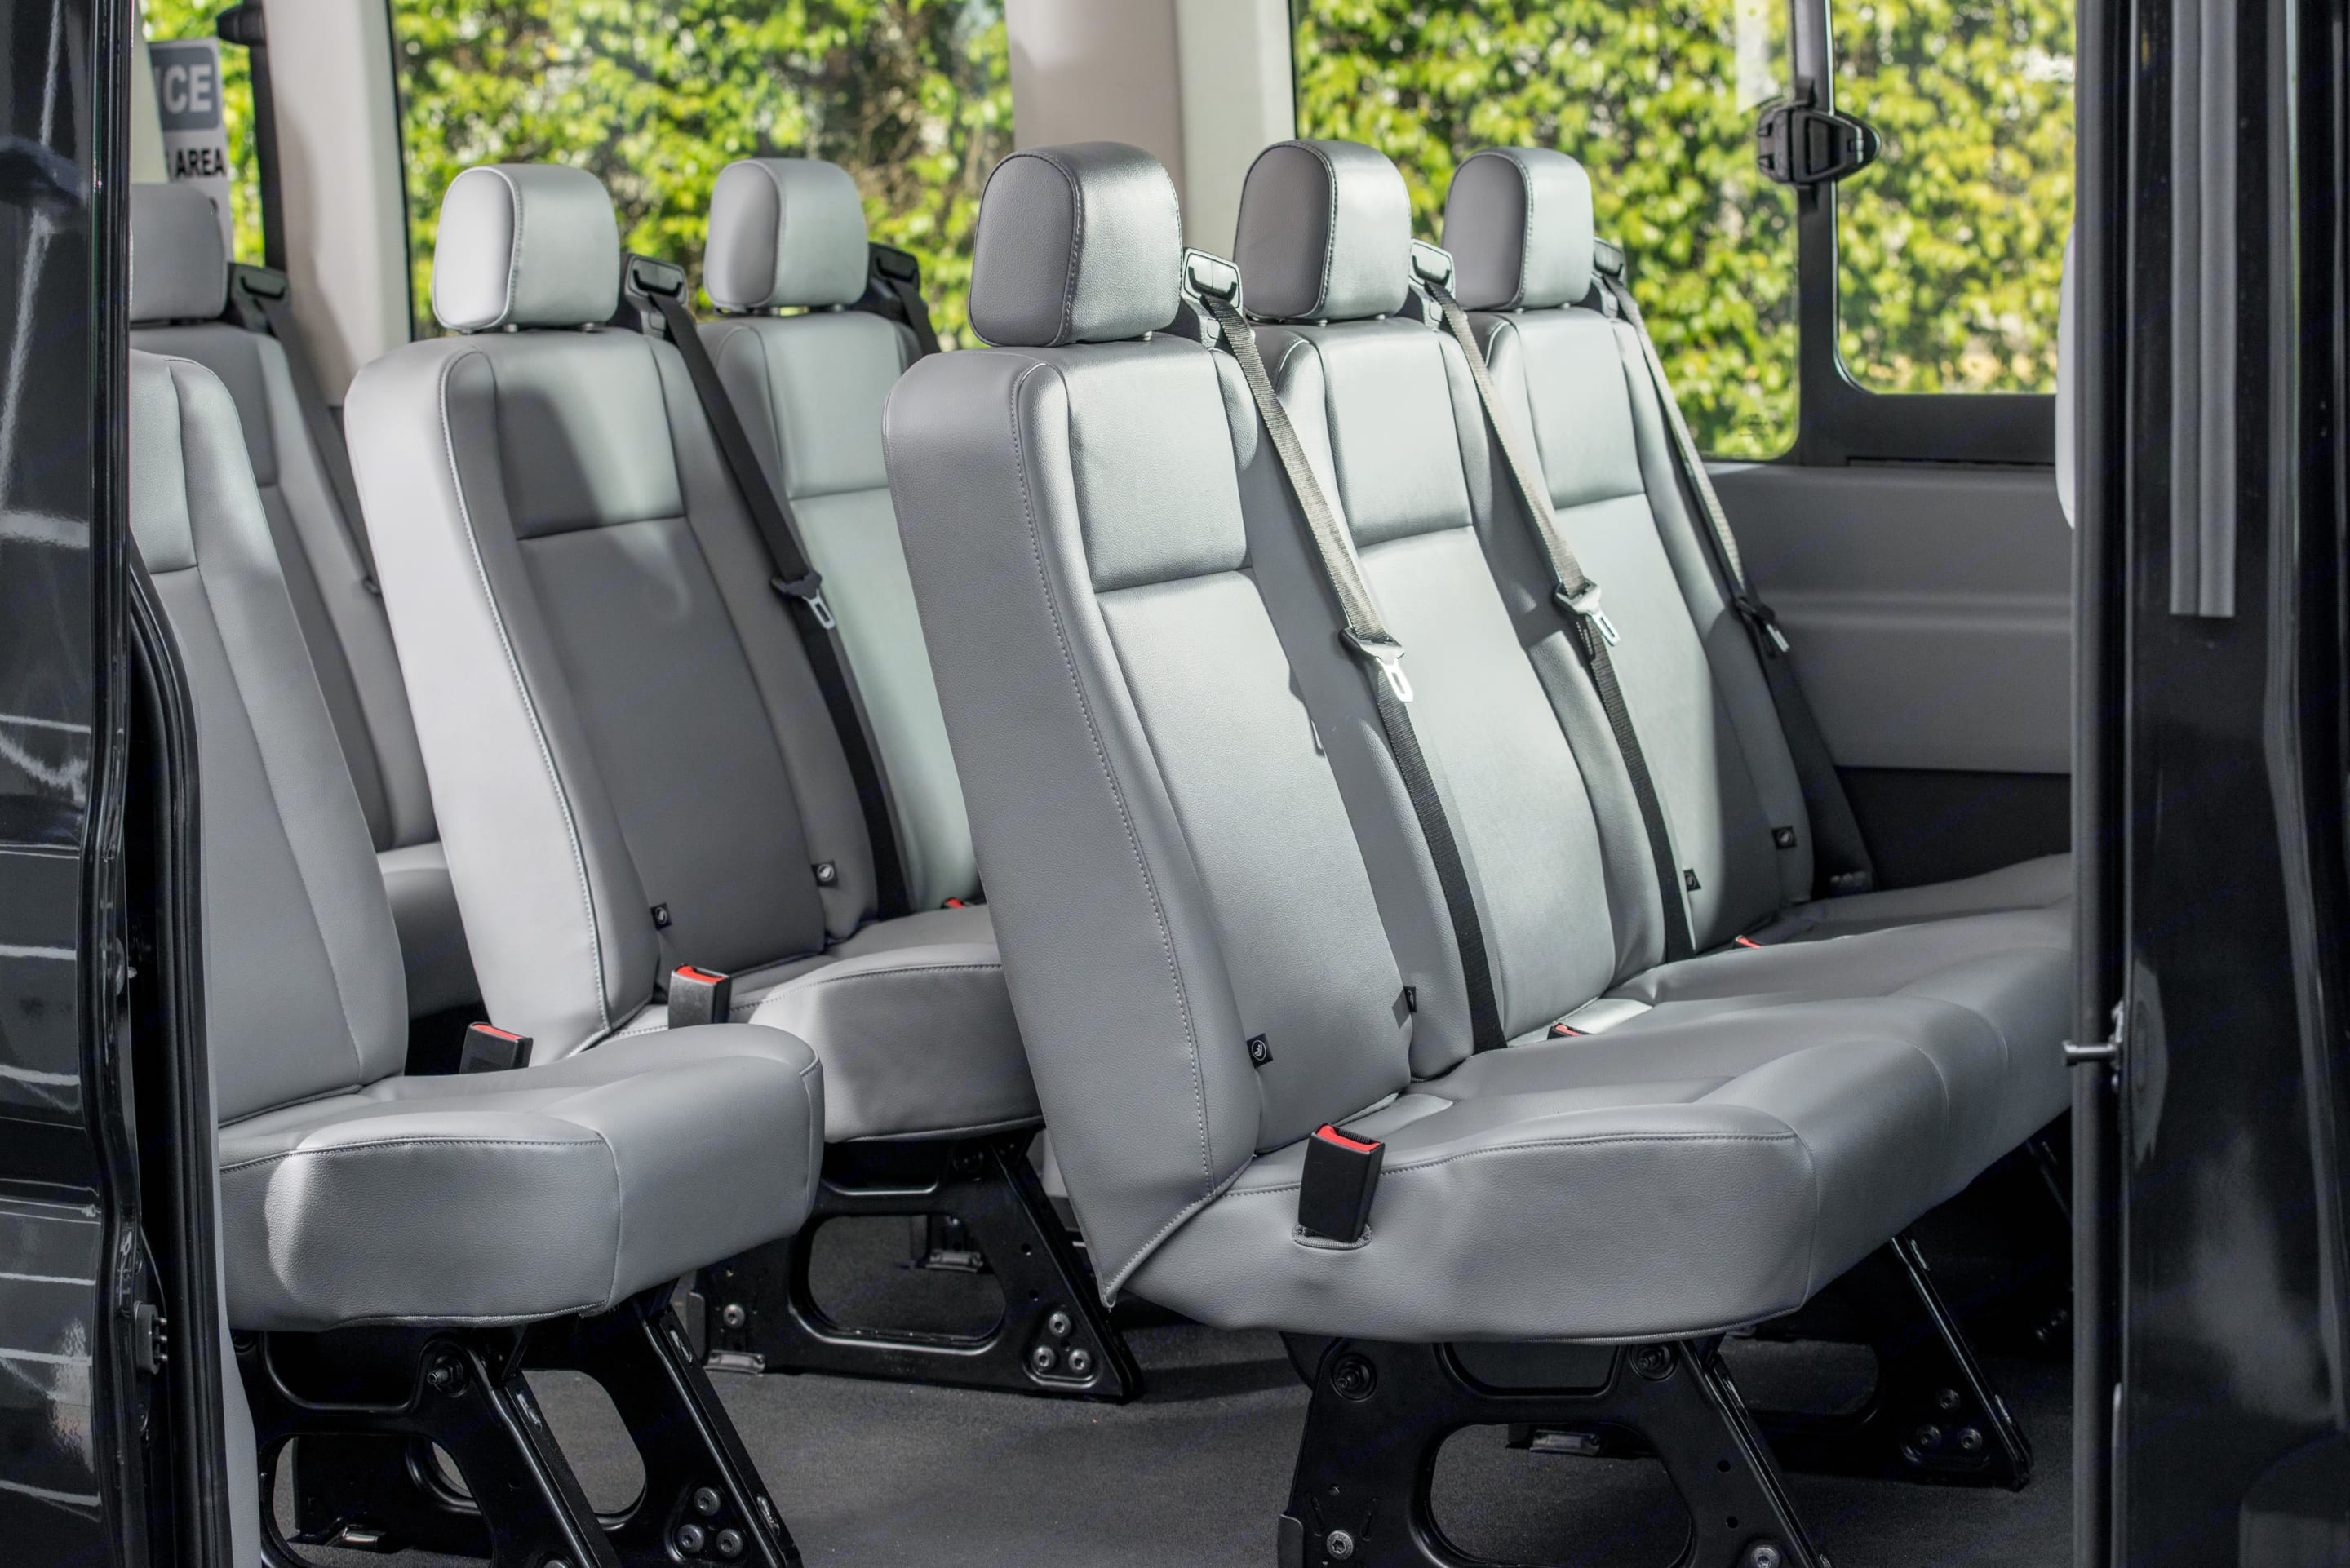 Seats 11 comfortably and 3 can sleep on rows while moving or parked.. Ford Transit 350 HD 2015